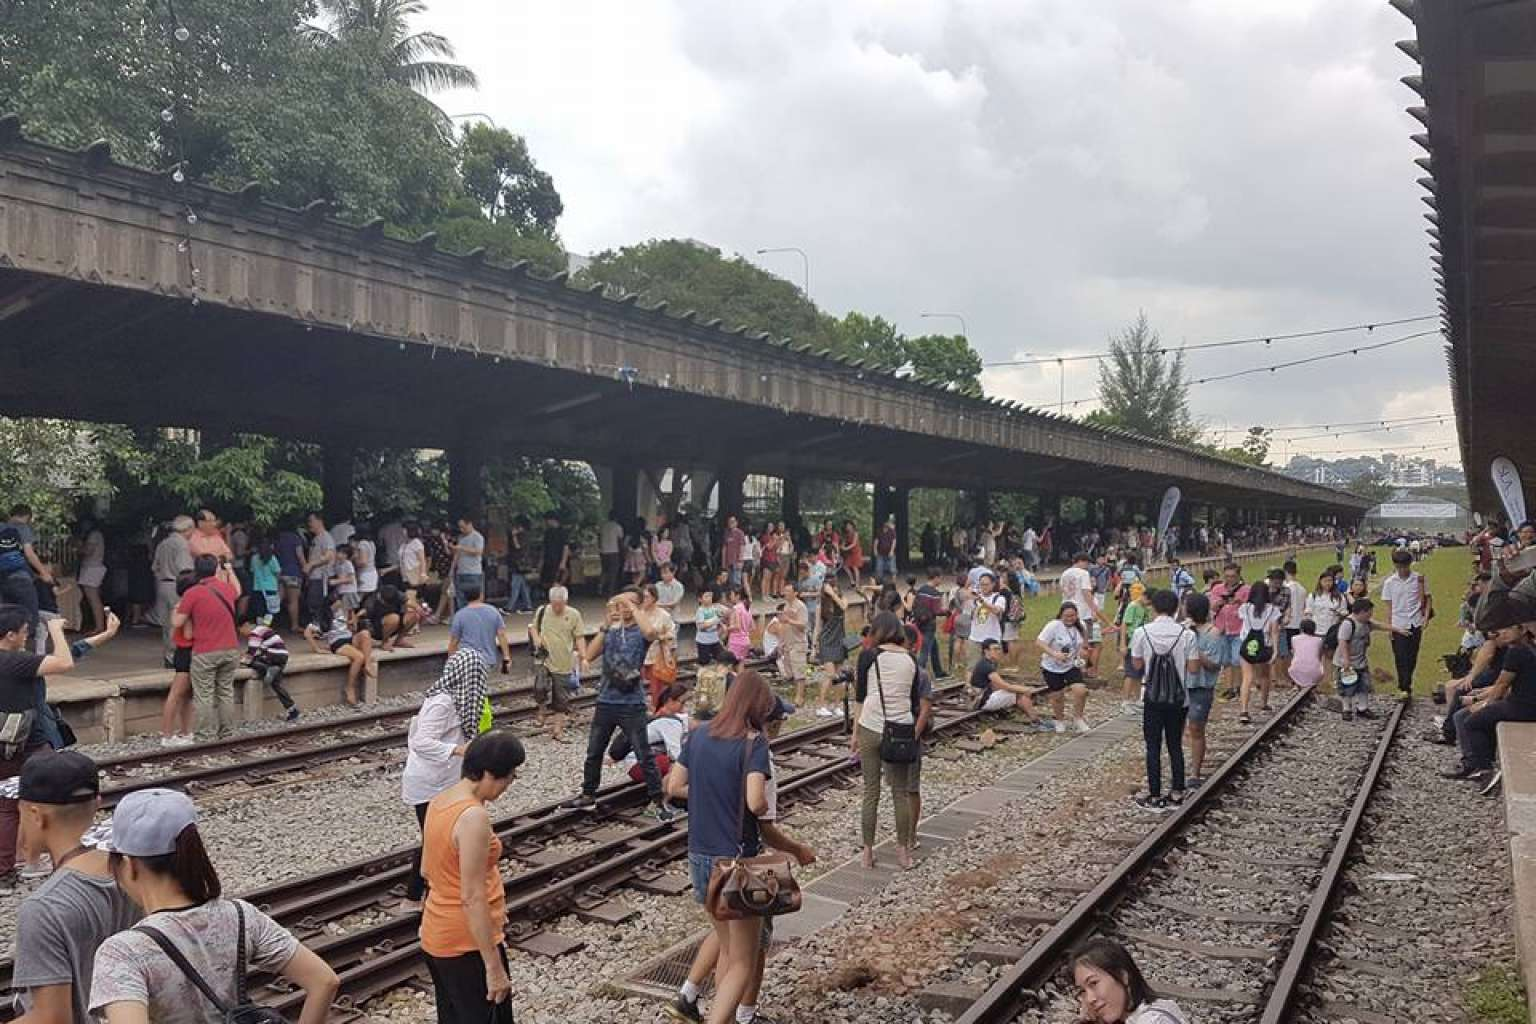 More than 30,000 people turned up to say farewell to the Tanjong Pagar Railway Station on Christmas.